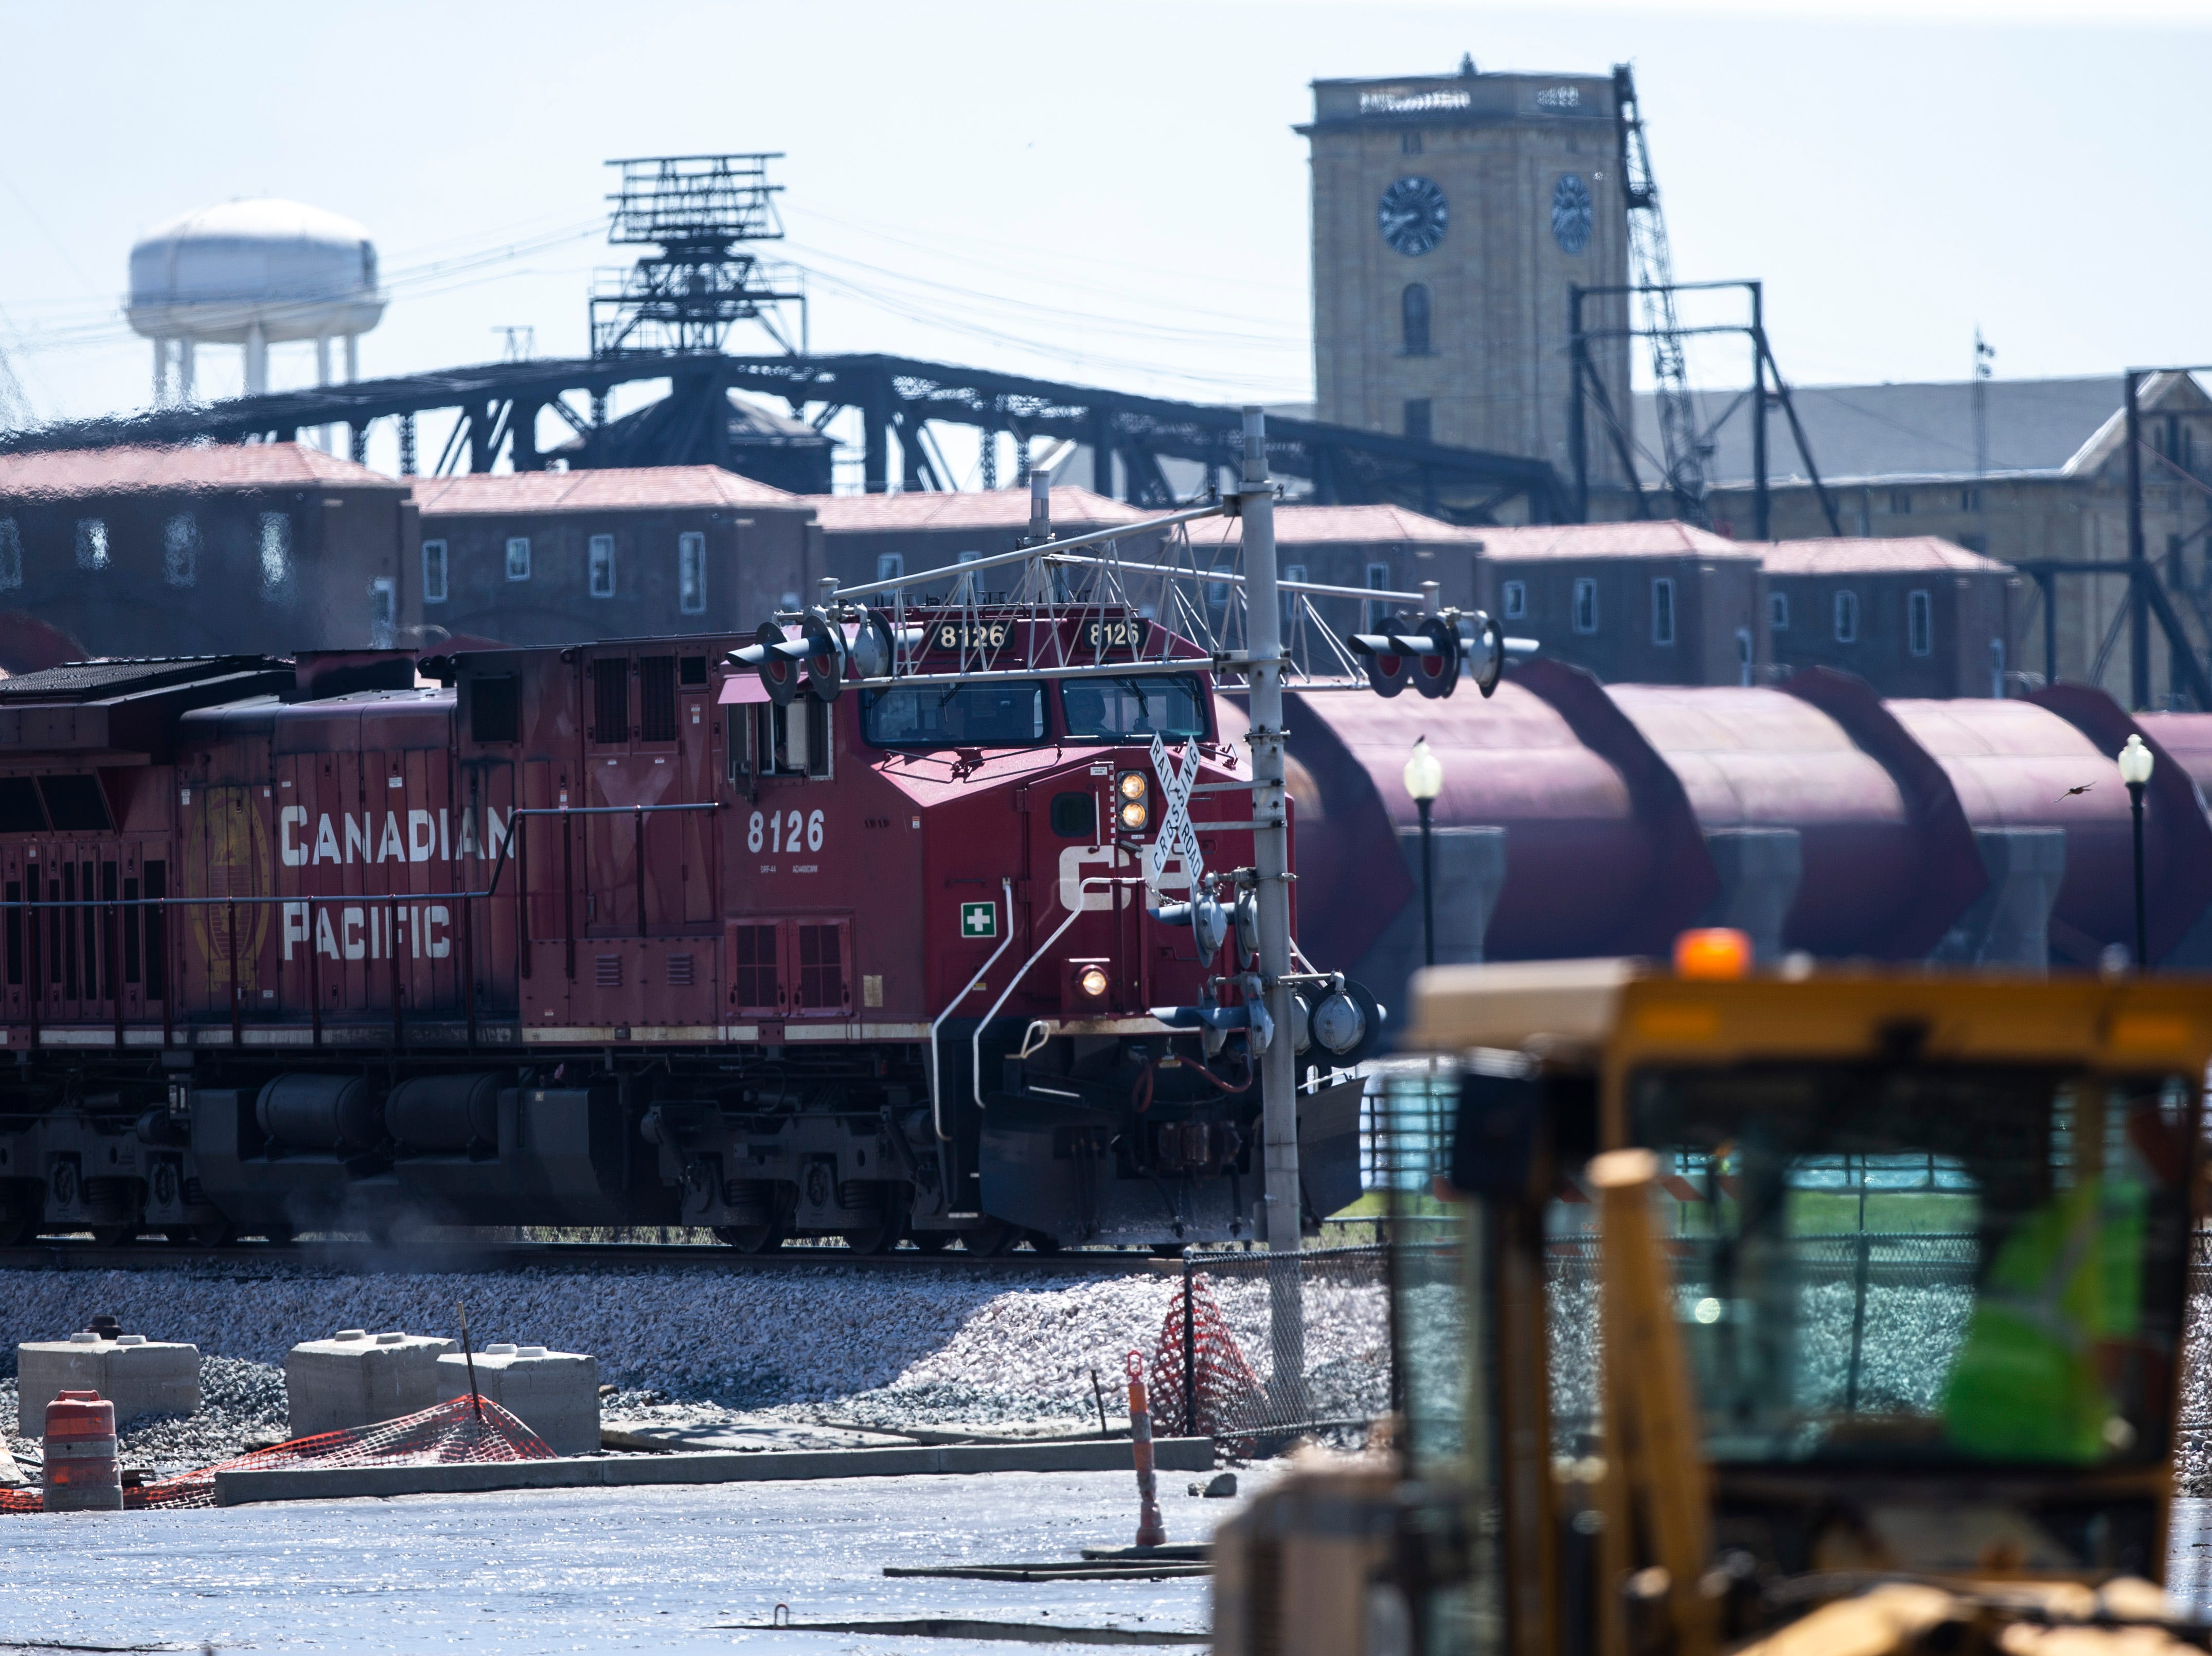 A Canadian Pacific train engine drives along the tracks as cleanup begins after floodwaters receded, Wednesday, May 15, 2019, in downtown Davenport, Iowa.